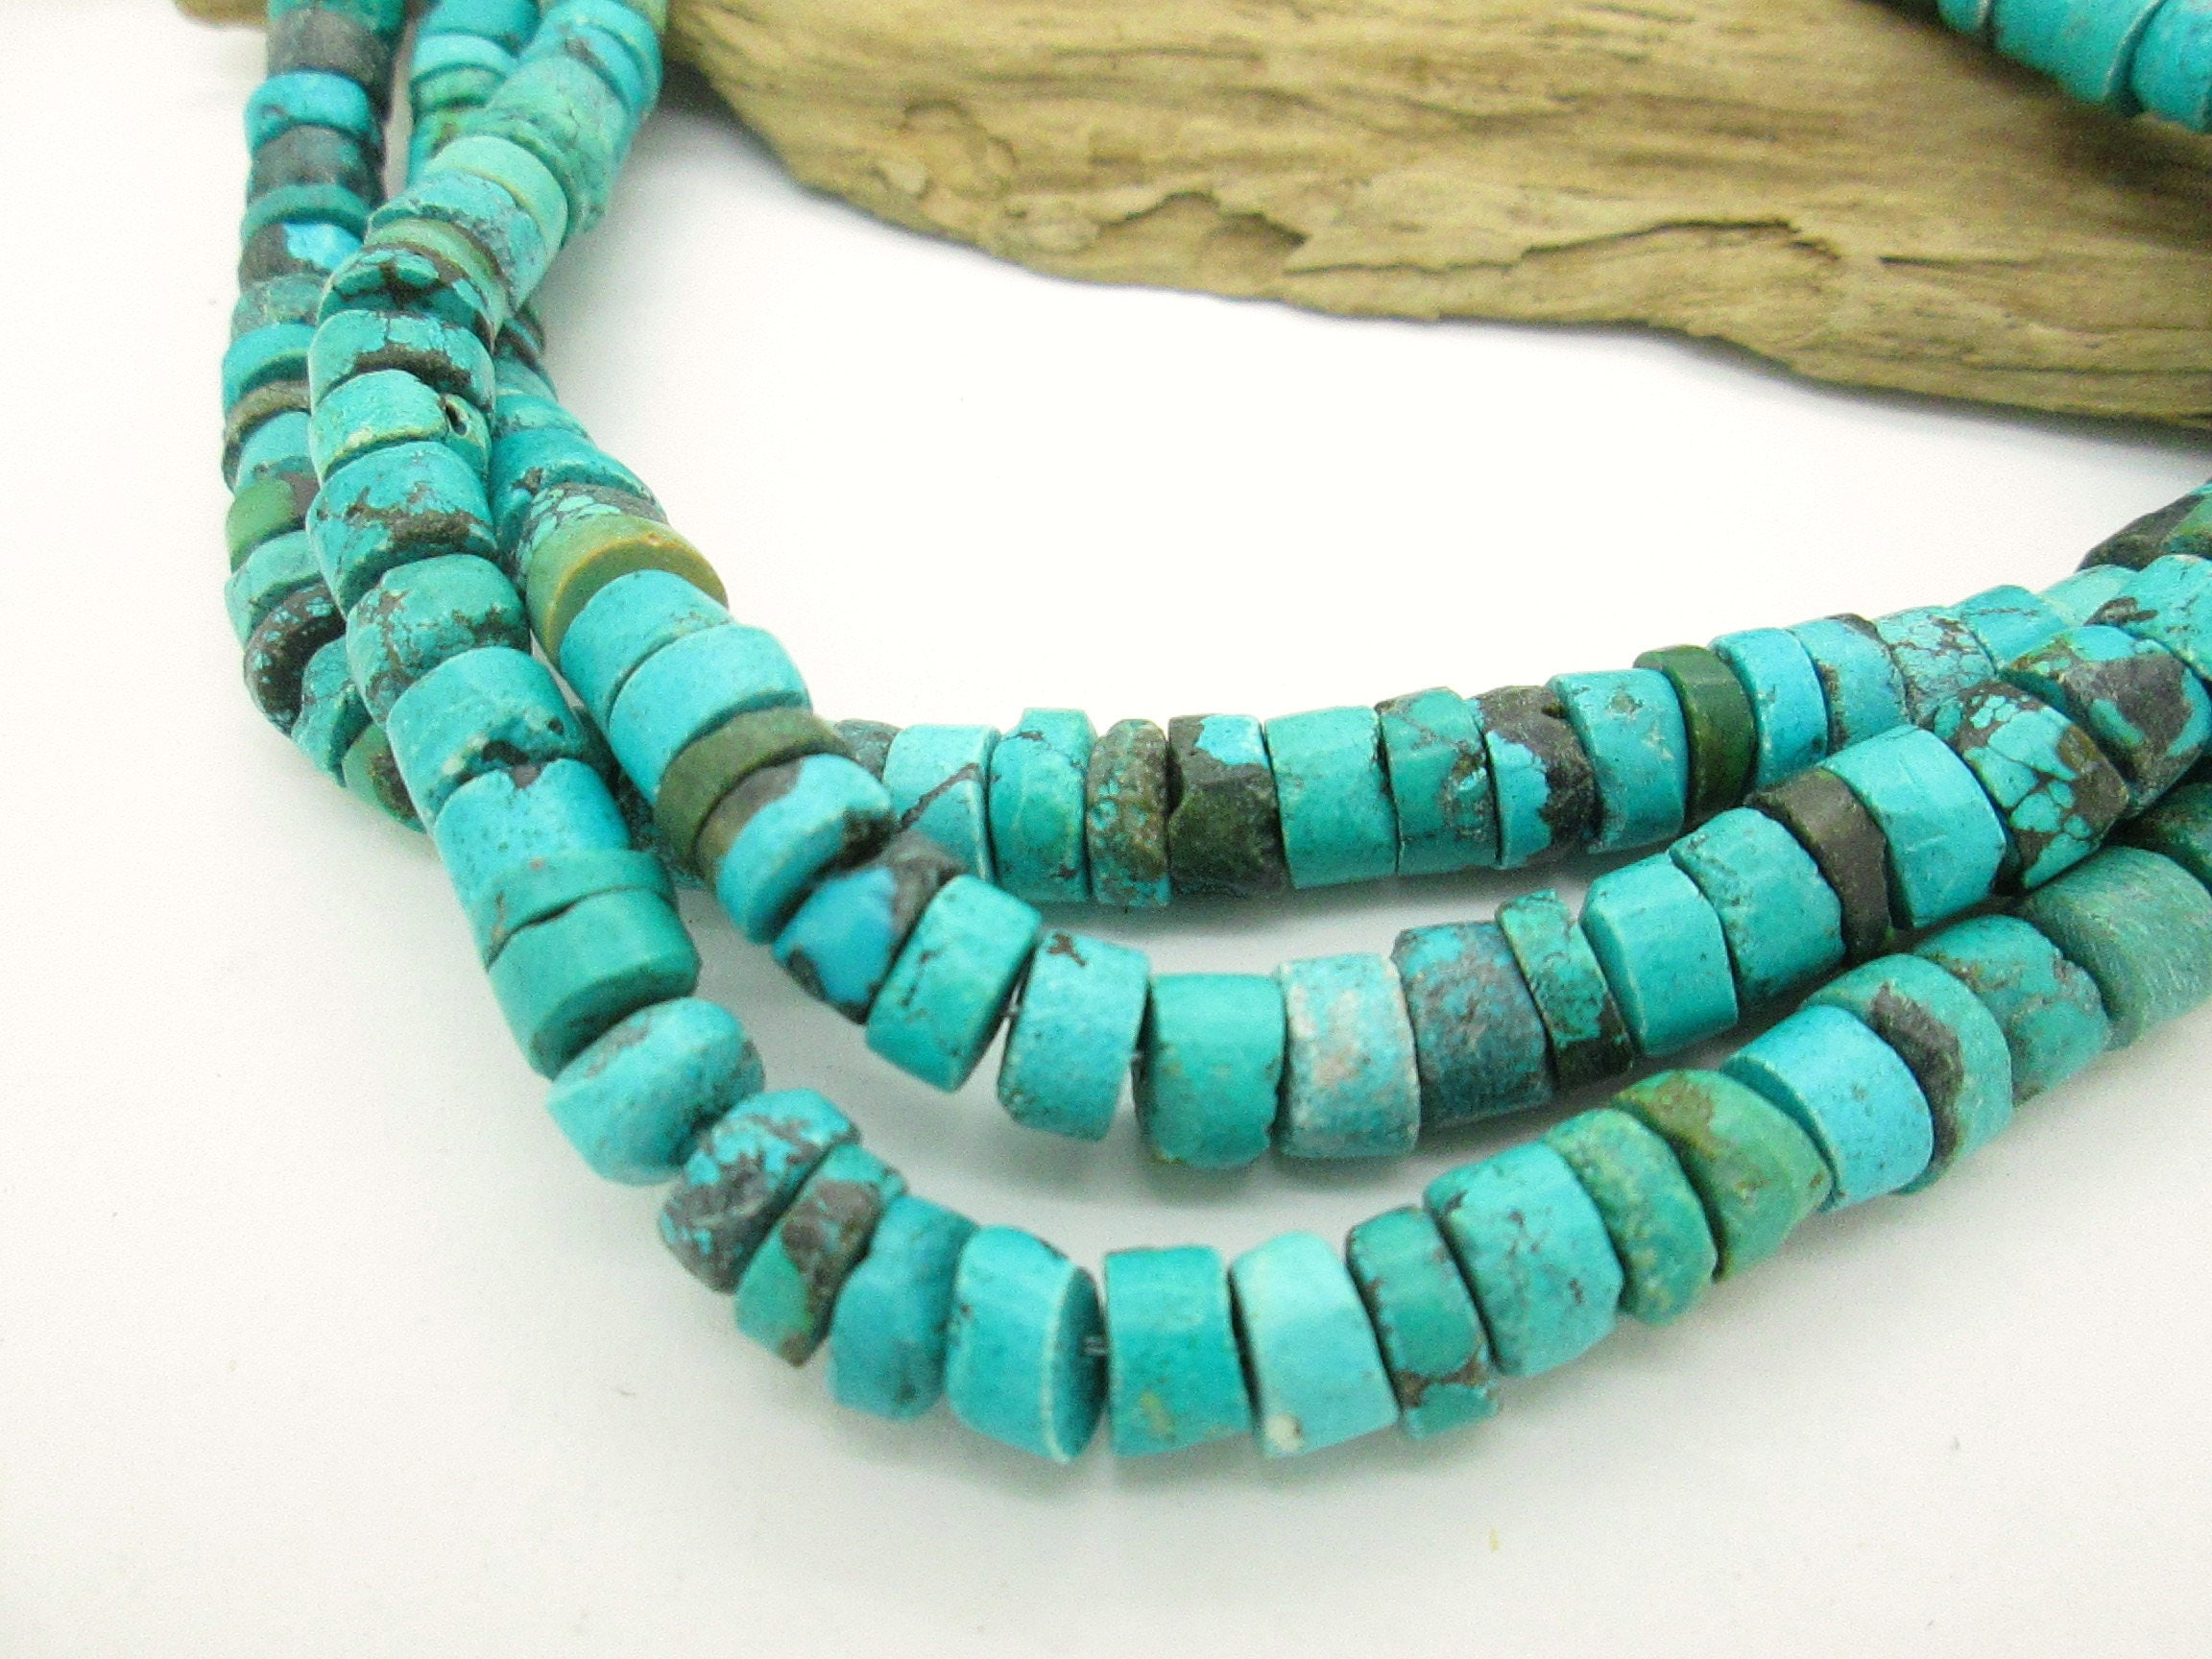 southwestern s nuggets southwest page product turquoise category jewelry jewellery petroglyph